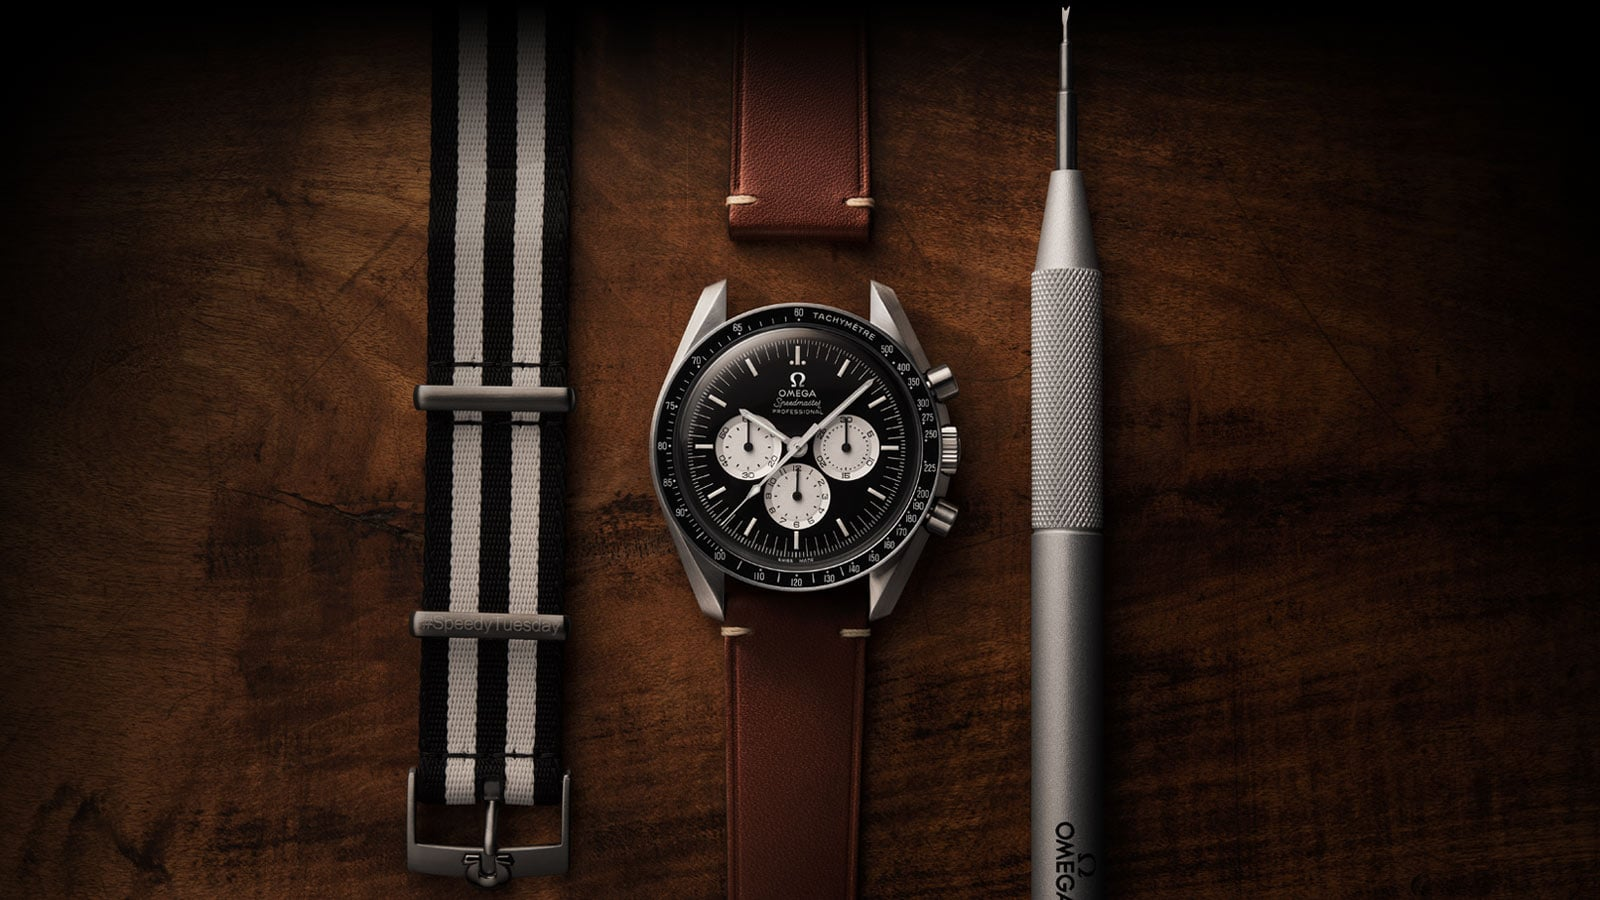 De eerste Speedy Tuesday Speedmaster